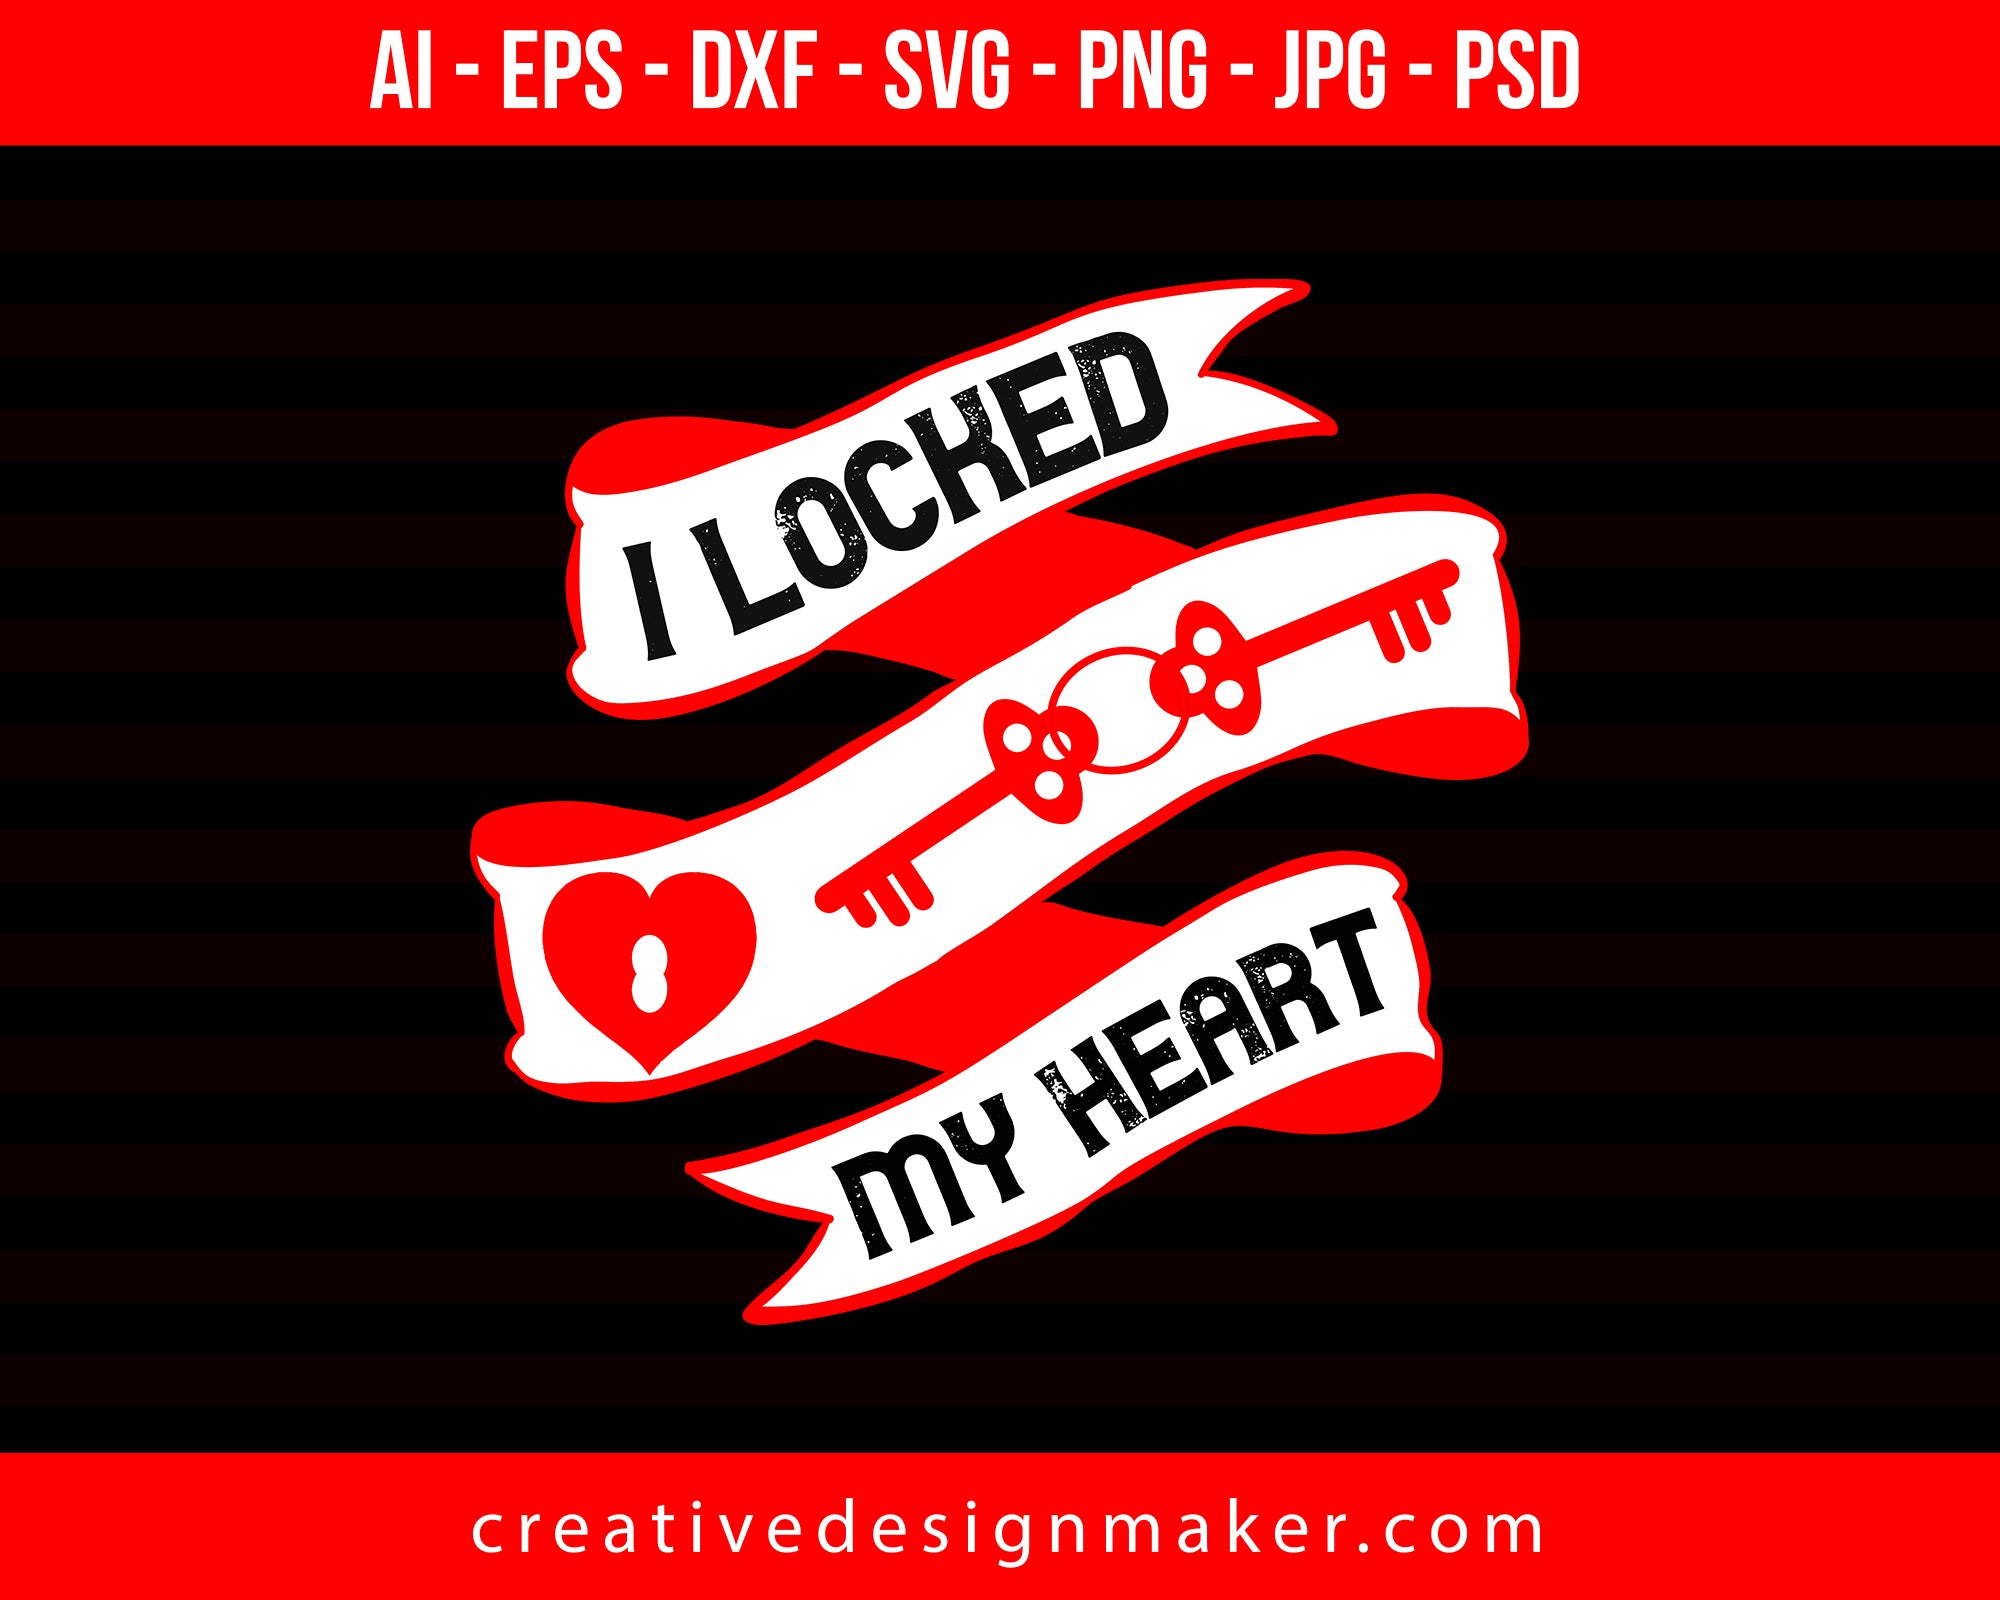 I Looked My Heart Couple Print Ready Editable T-Shirt SVG Design!